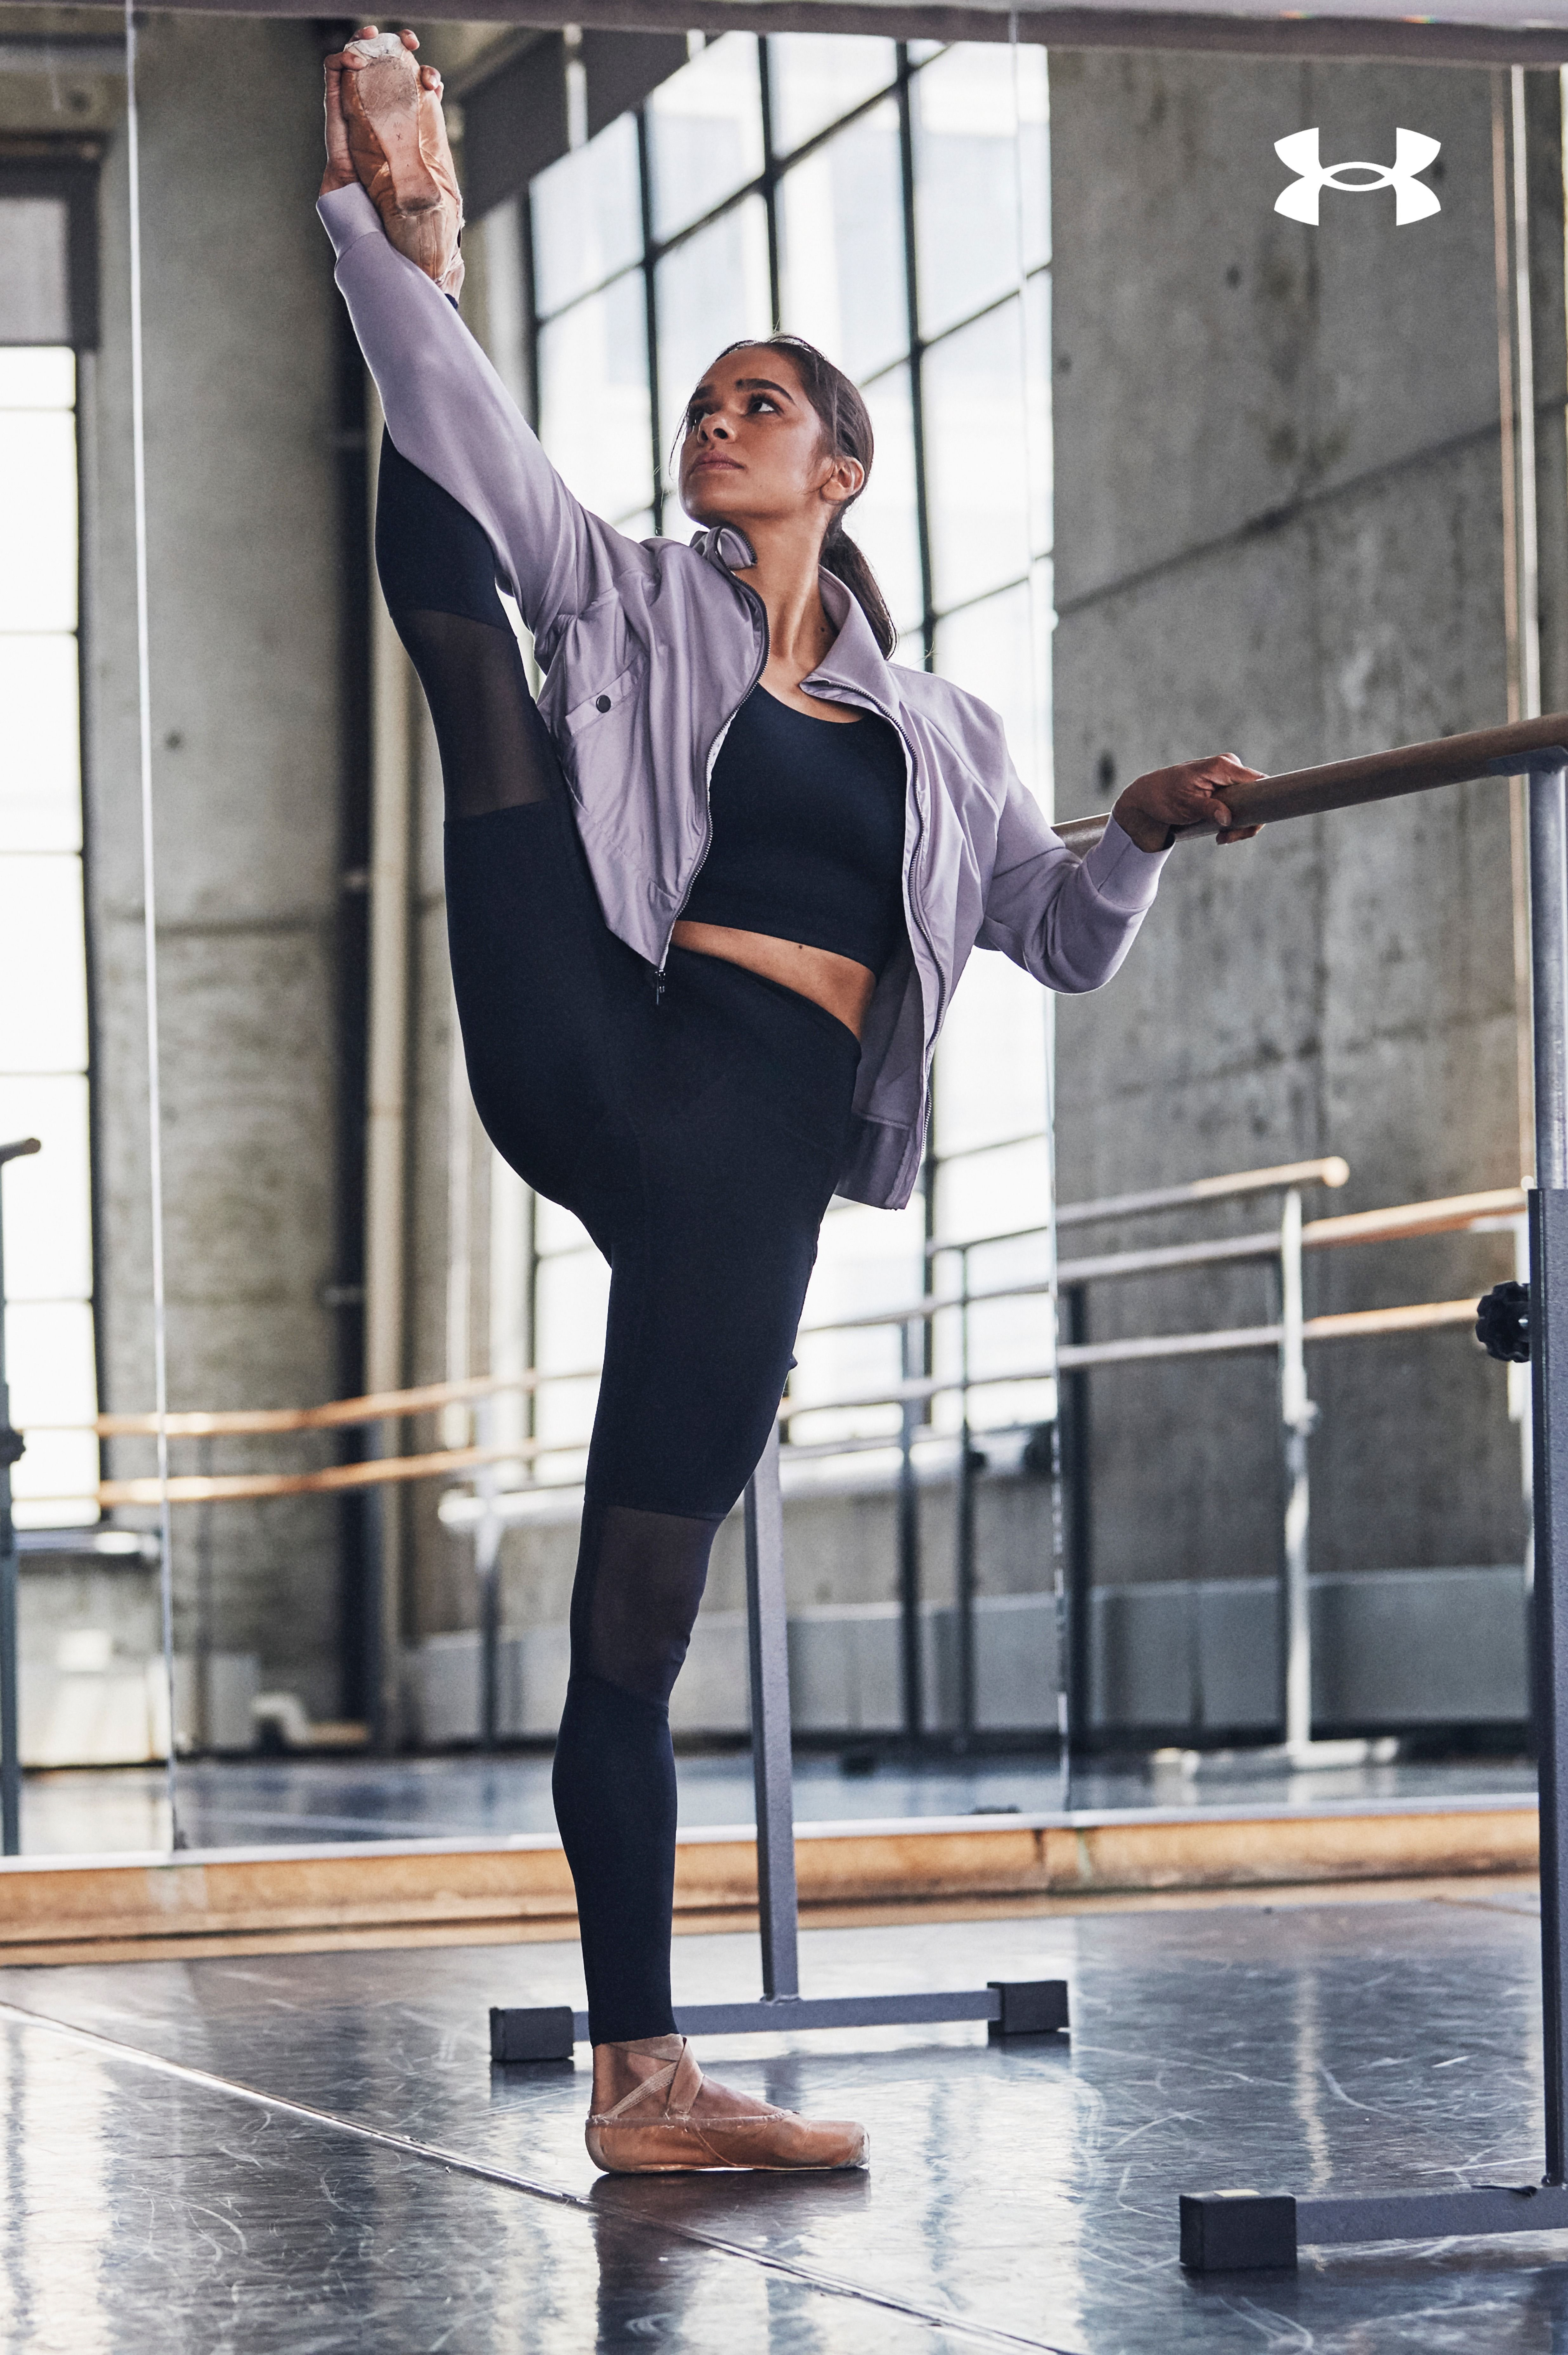 Our Misty Copeland Signature collection features ballet-inspired details, including mesh paneling an...